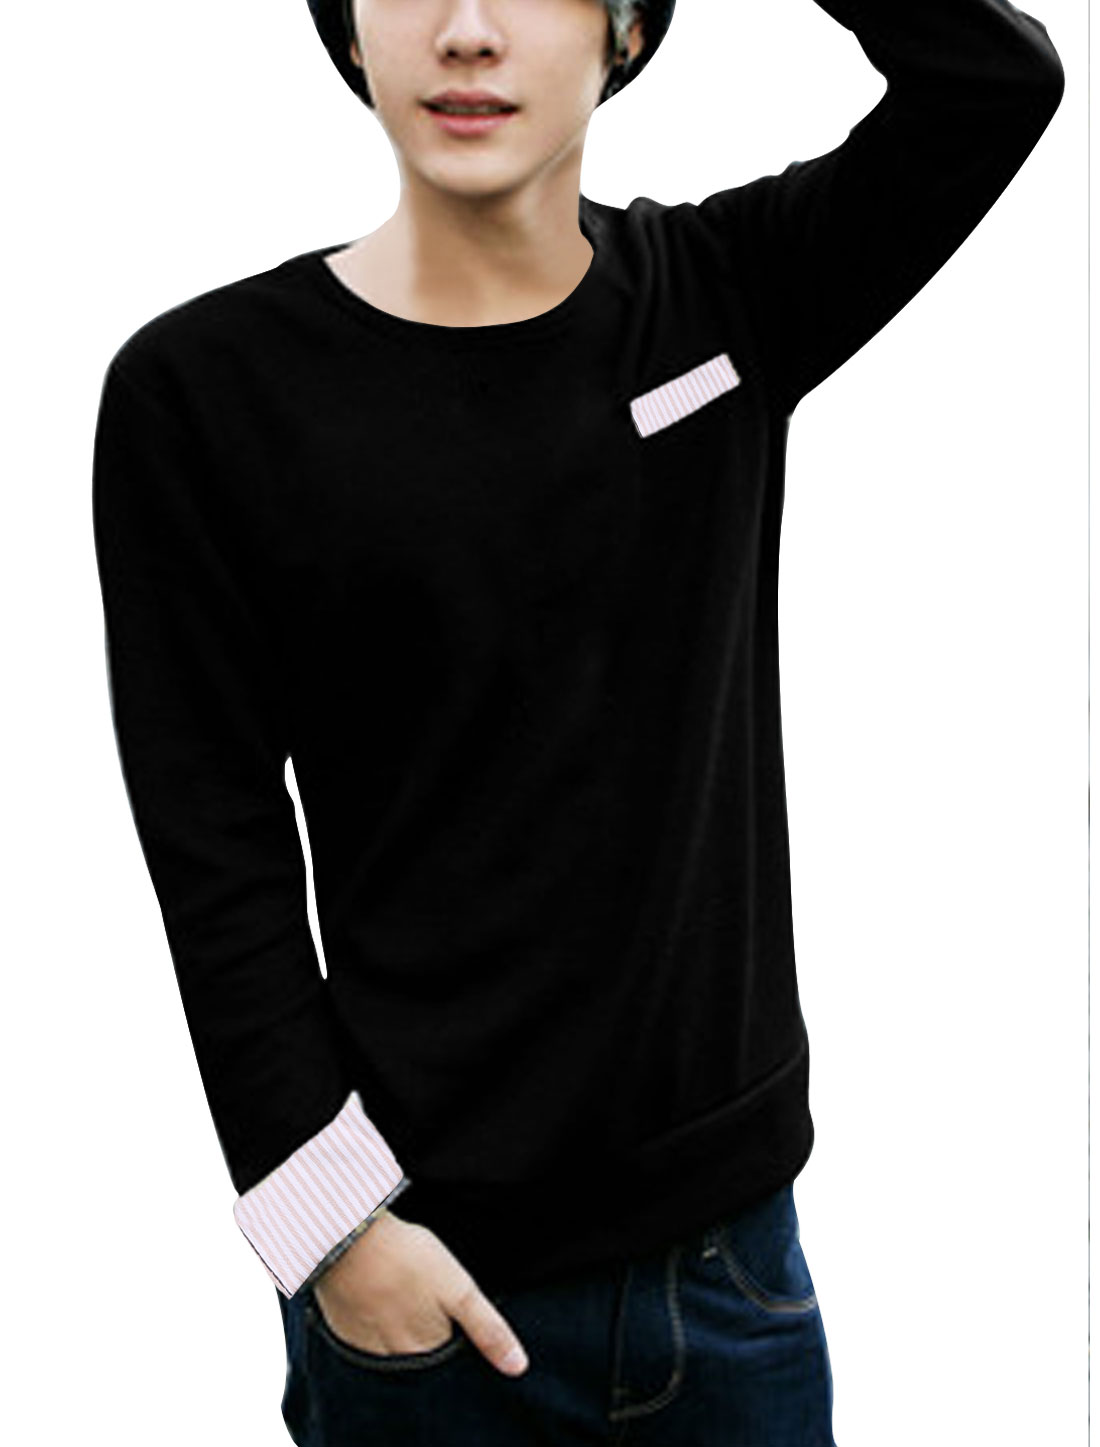 Man Round Neck Long Sleeve Stretchy Pullover Black Sweater S